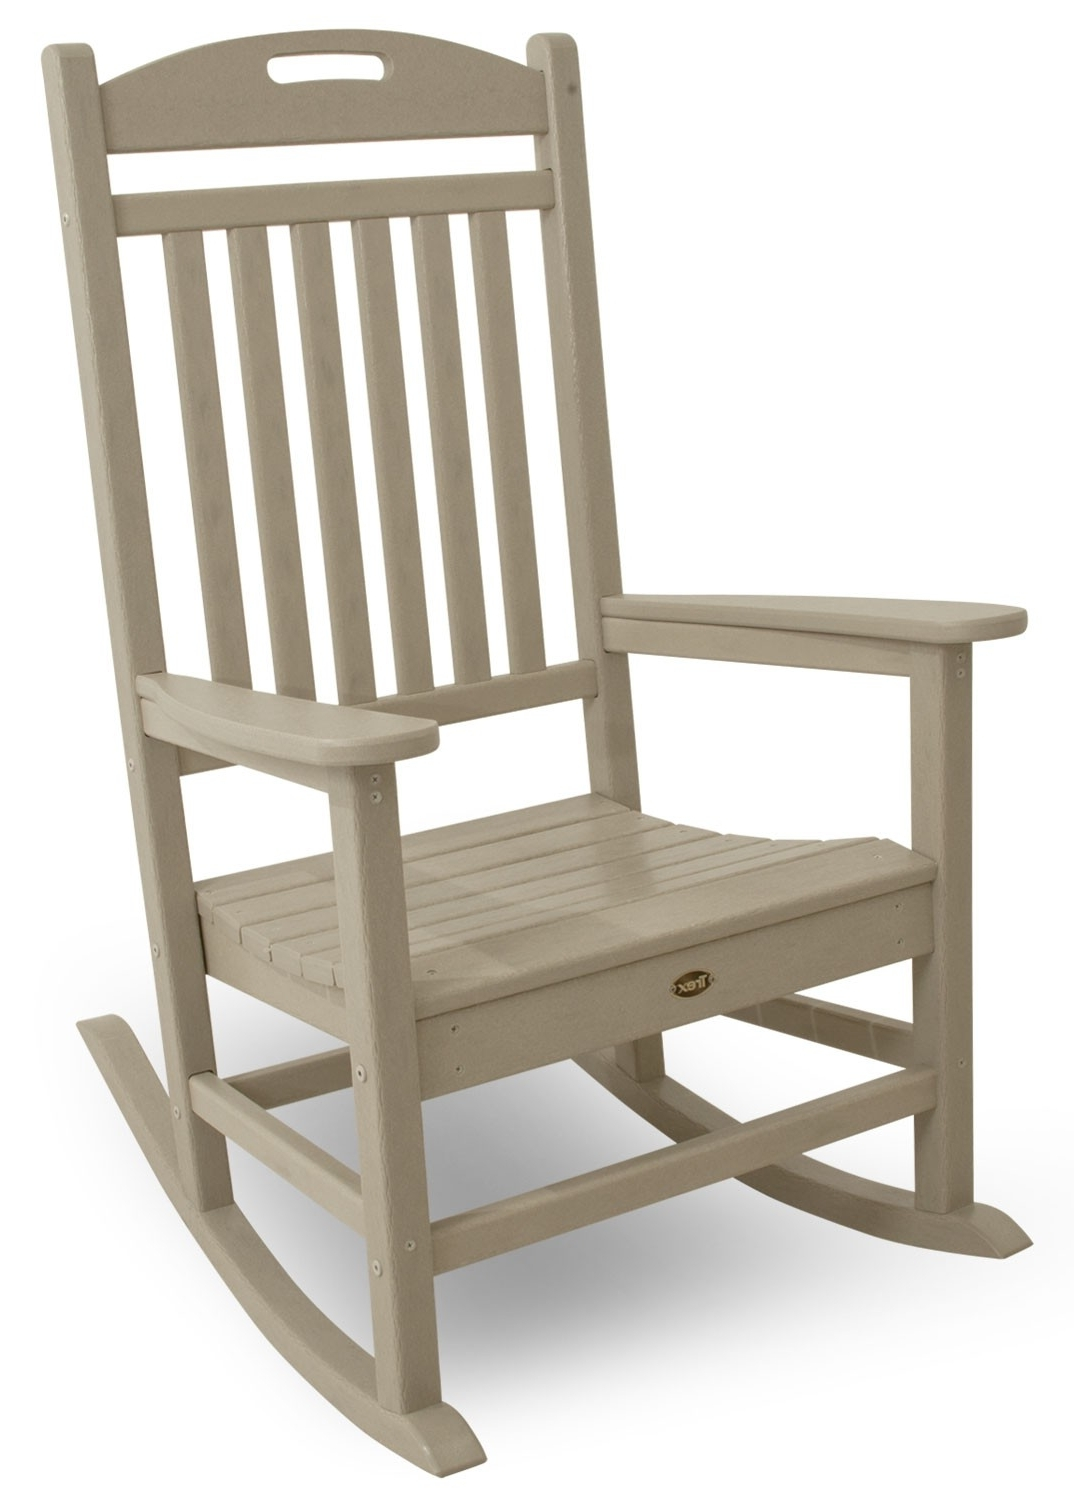 Most Recent Rocking Chair Outdoor Wooden Pertaining To Yacht Club Rocking Chair (View 9 of 20)